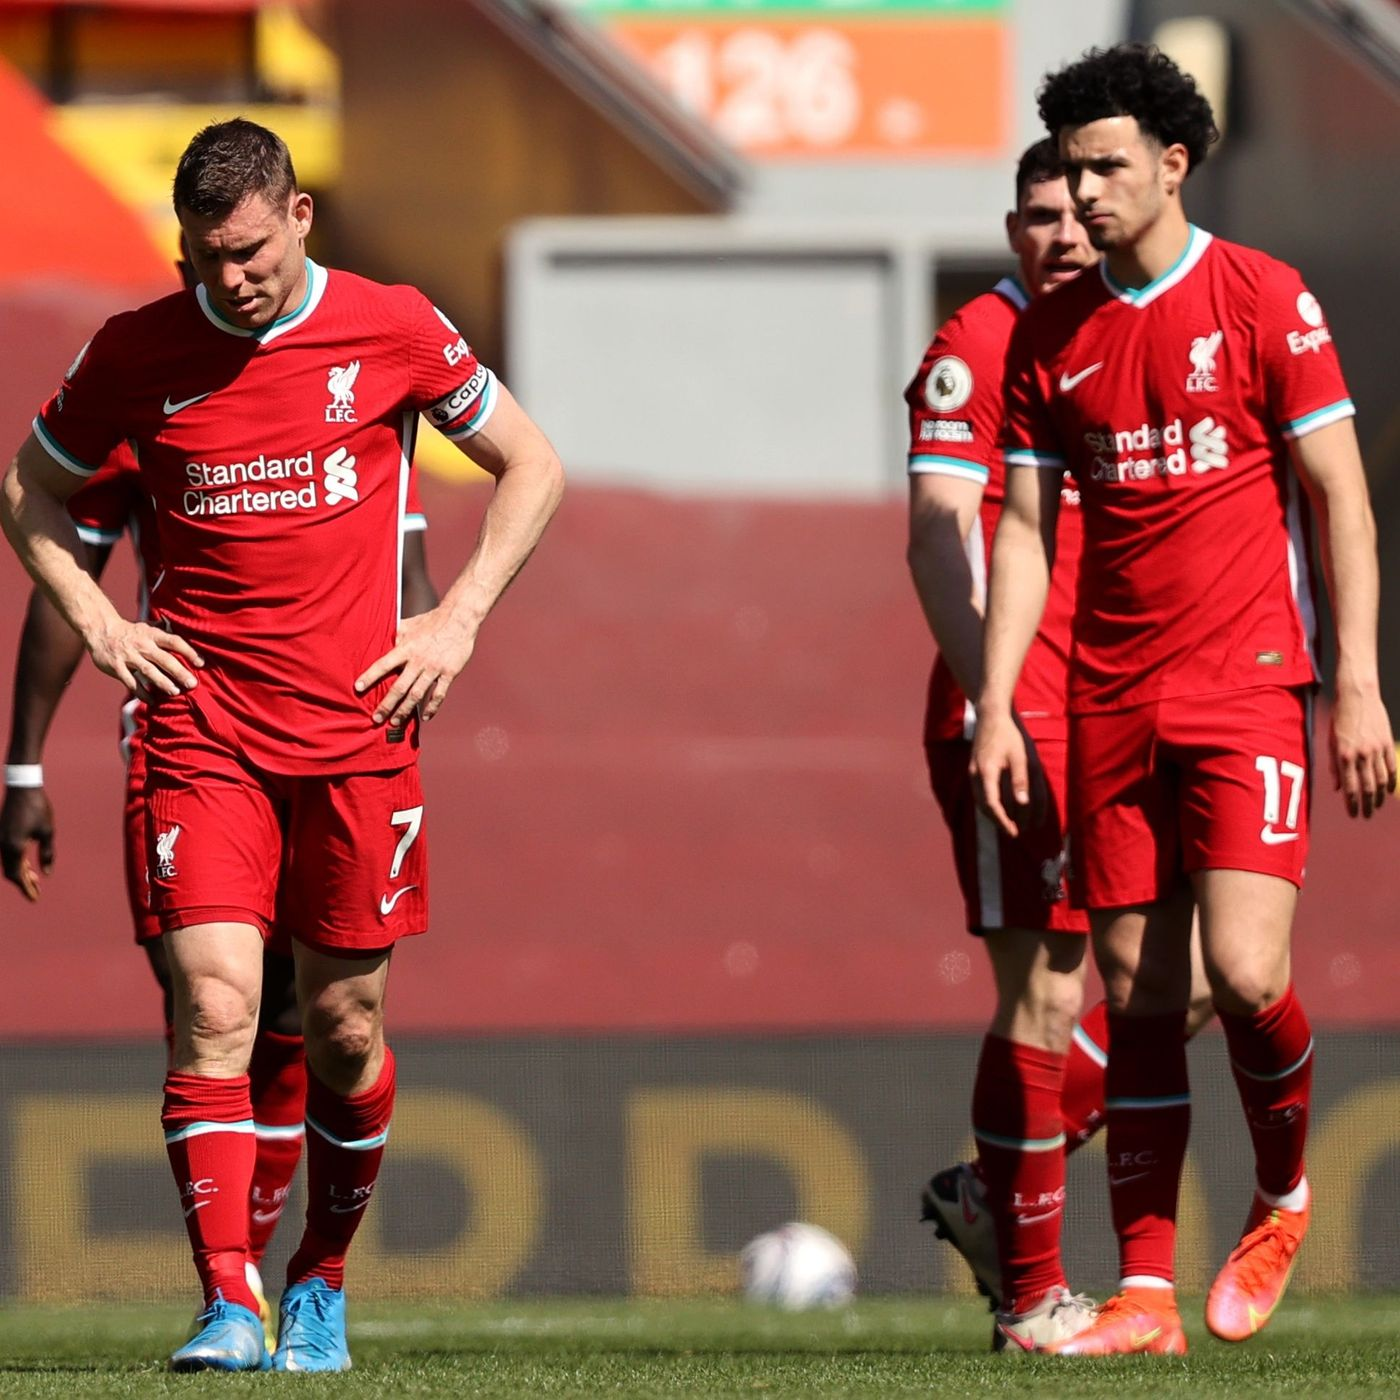 Post-Game: Liverpool 1 Newcastle United 1 | Bad end to bad week as another late lapse leaves top-four hopes hanging in balance